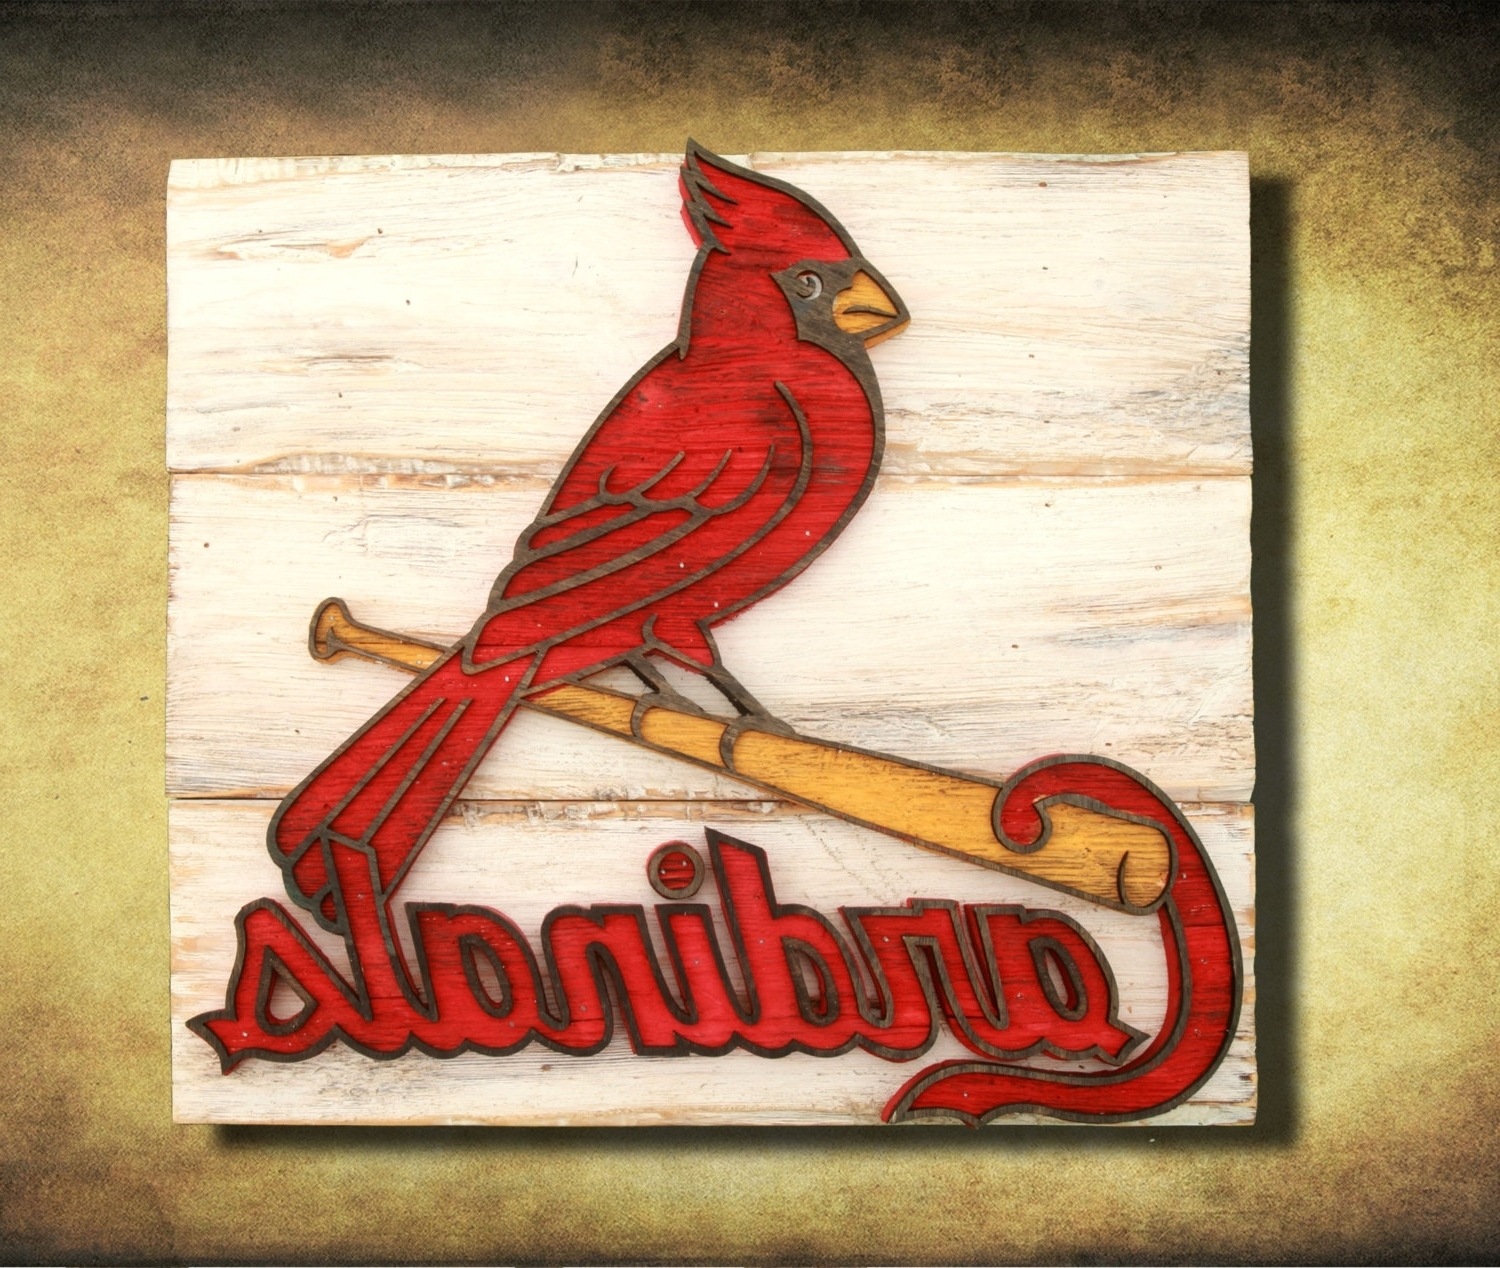 Well Known Saint Louis Cardinals Handmade Distressed Wood Sign, Vintage, Art Inside Vintage Baseball Wall Art (View 15 of 15)